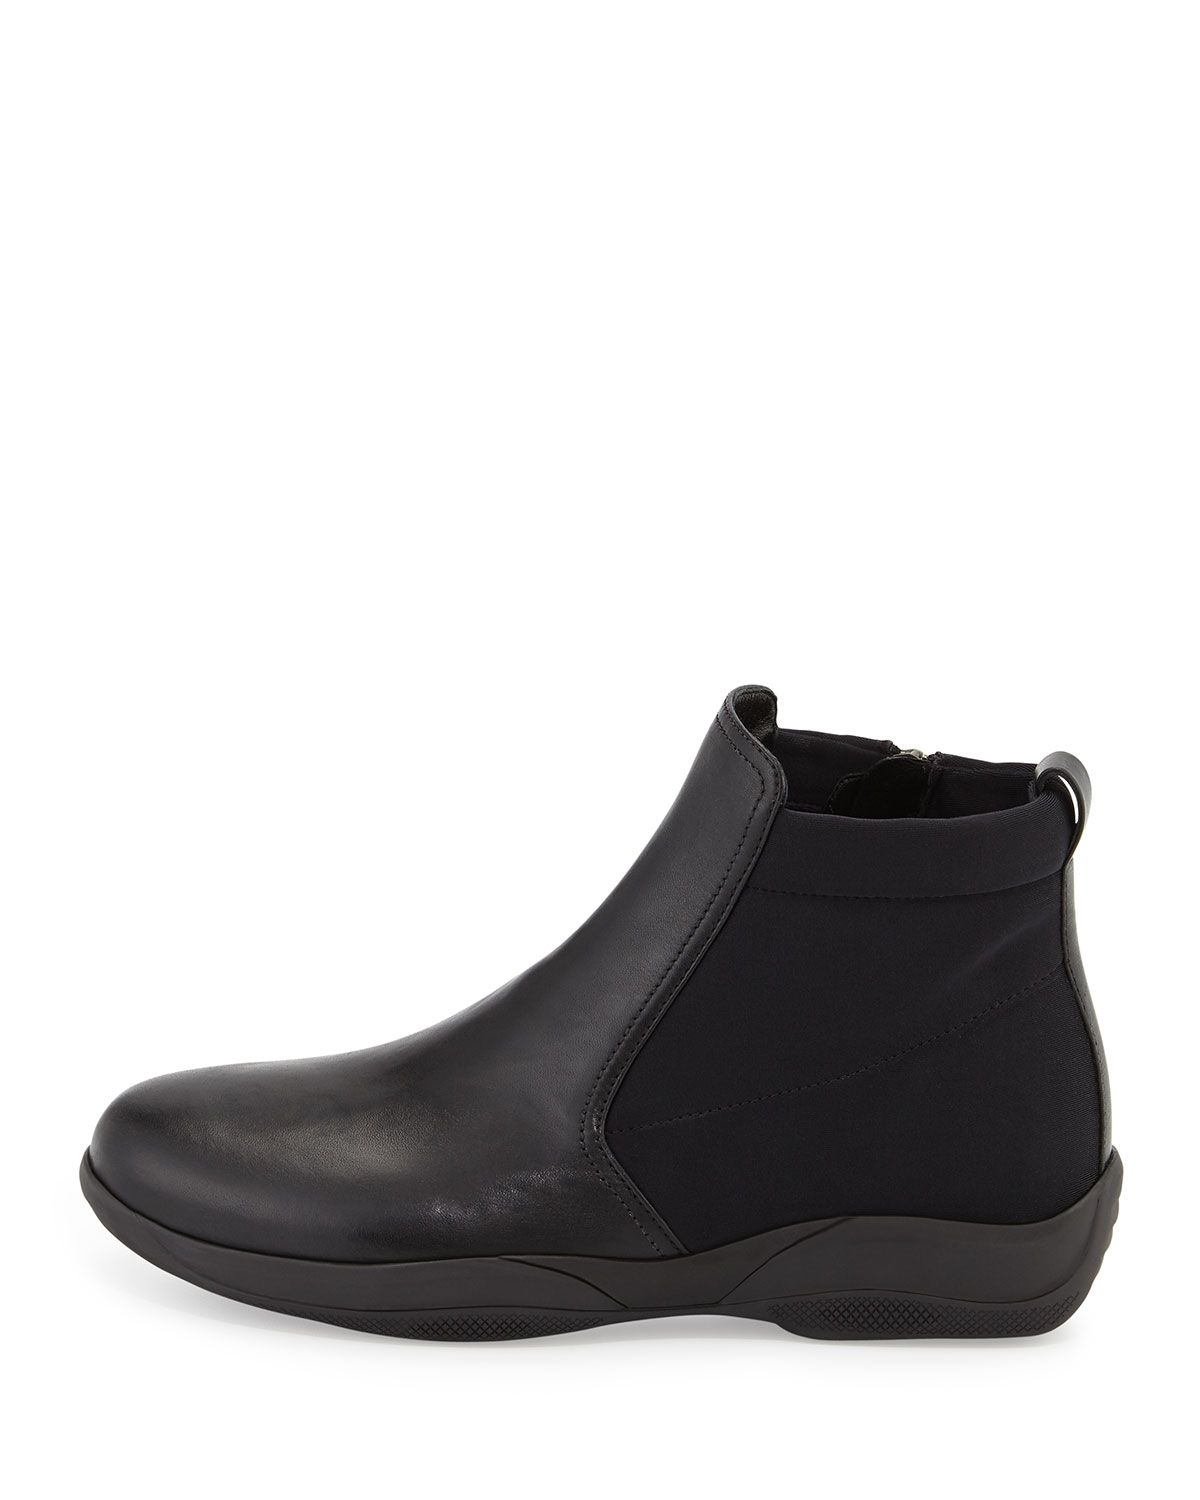 fashionable sale online free shipping sale Prada Sport Embossed Leather Ankle Boots buy cheap for nice outlet eastbay AikAI